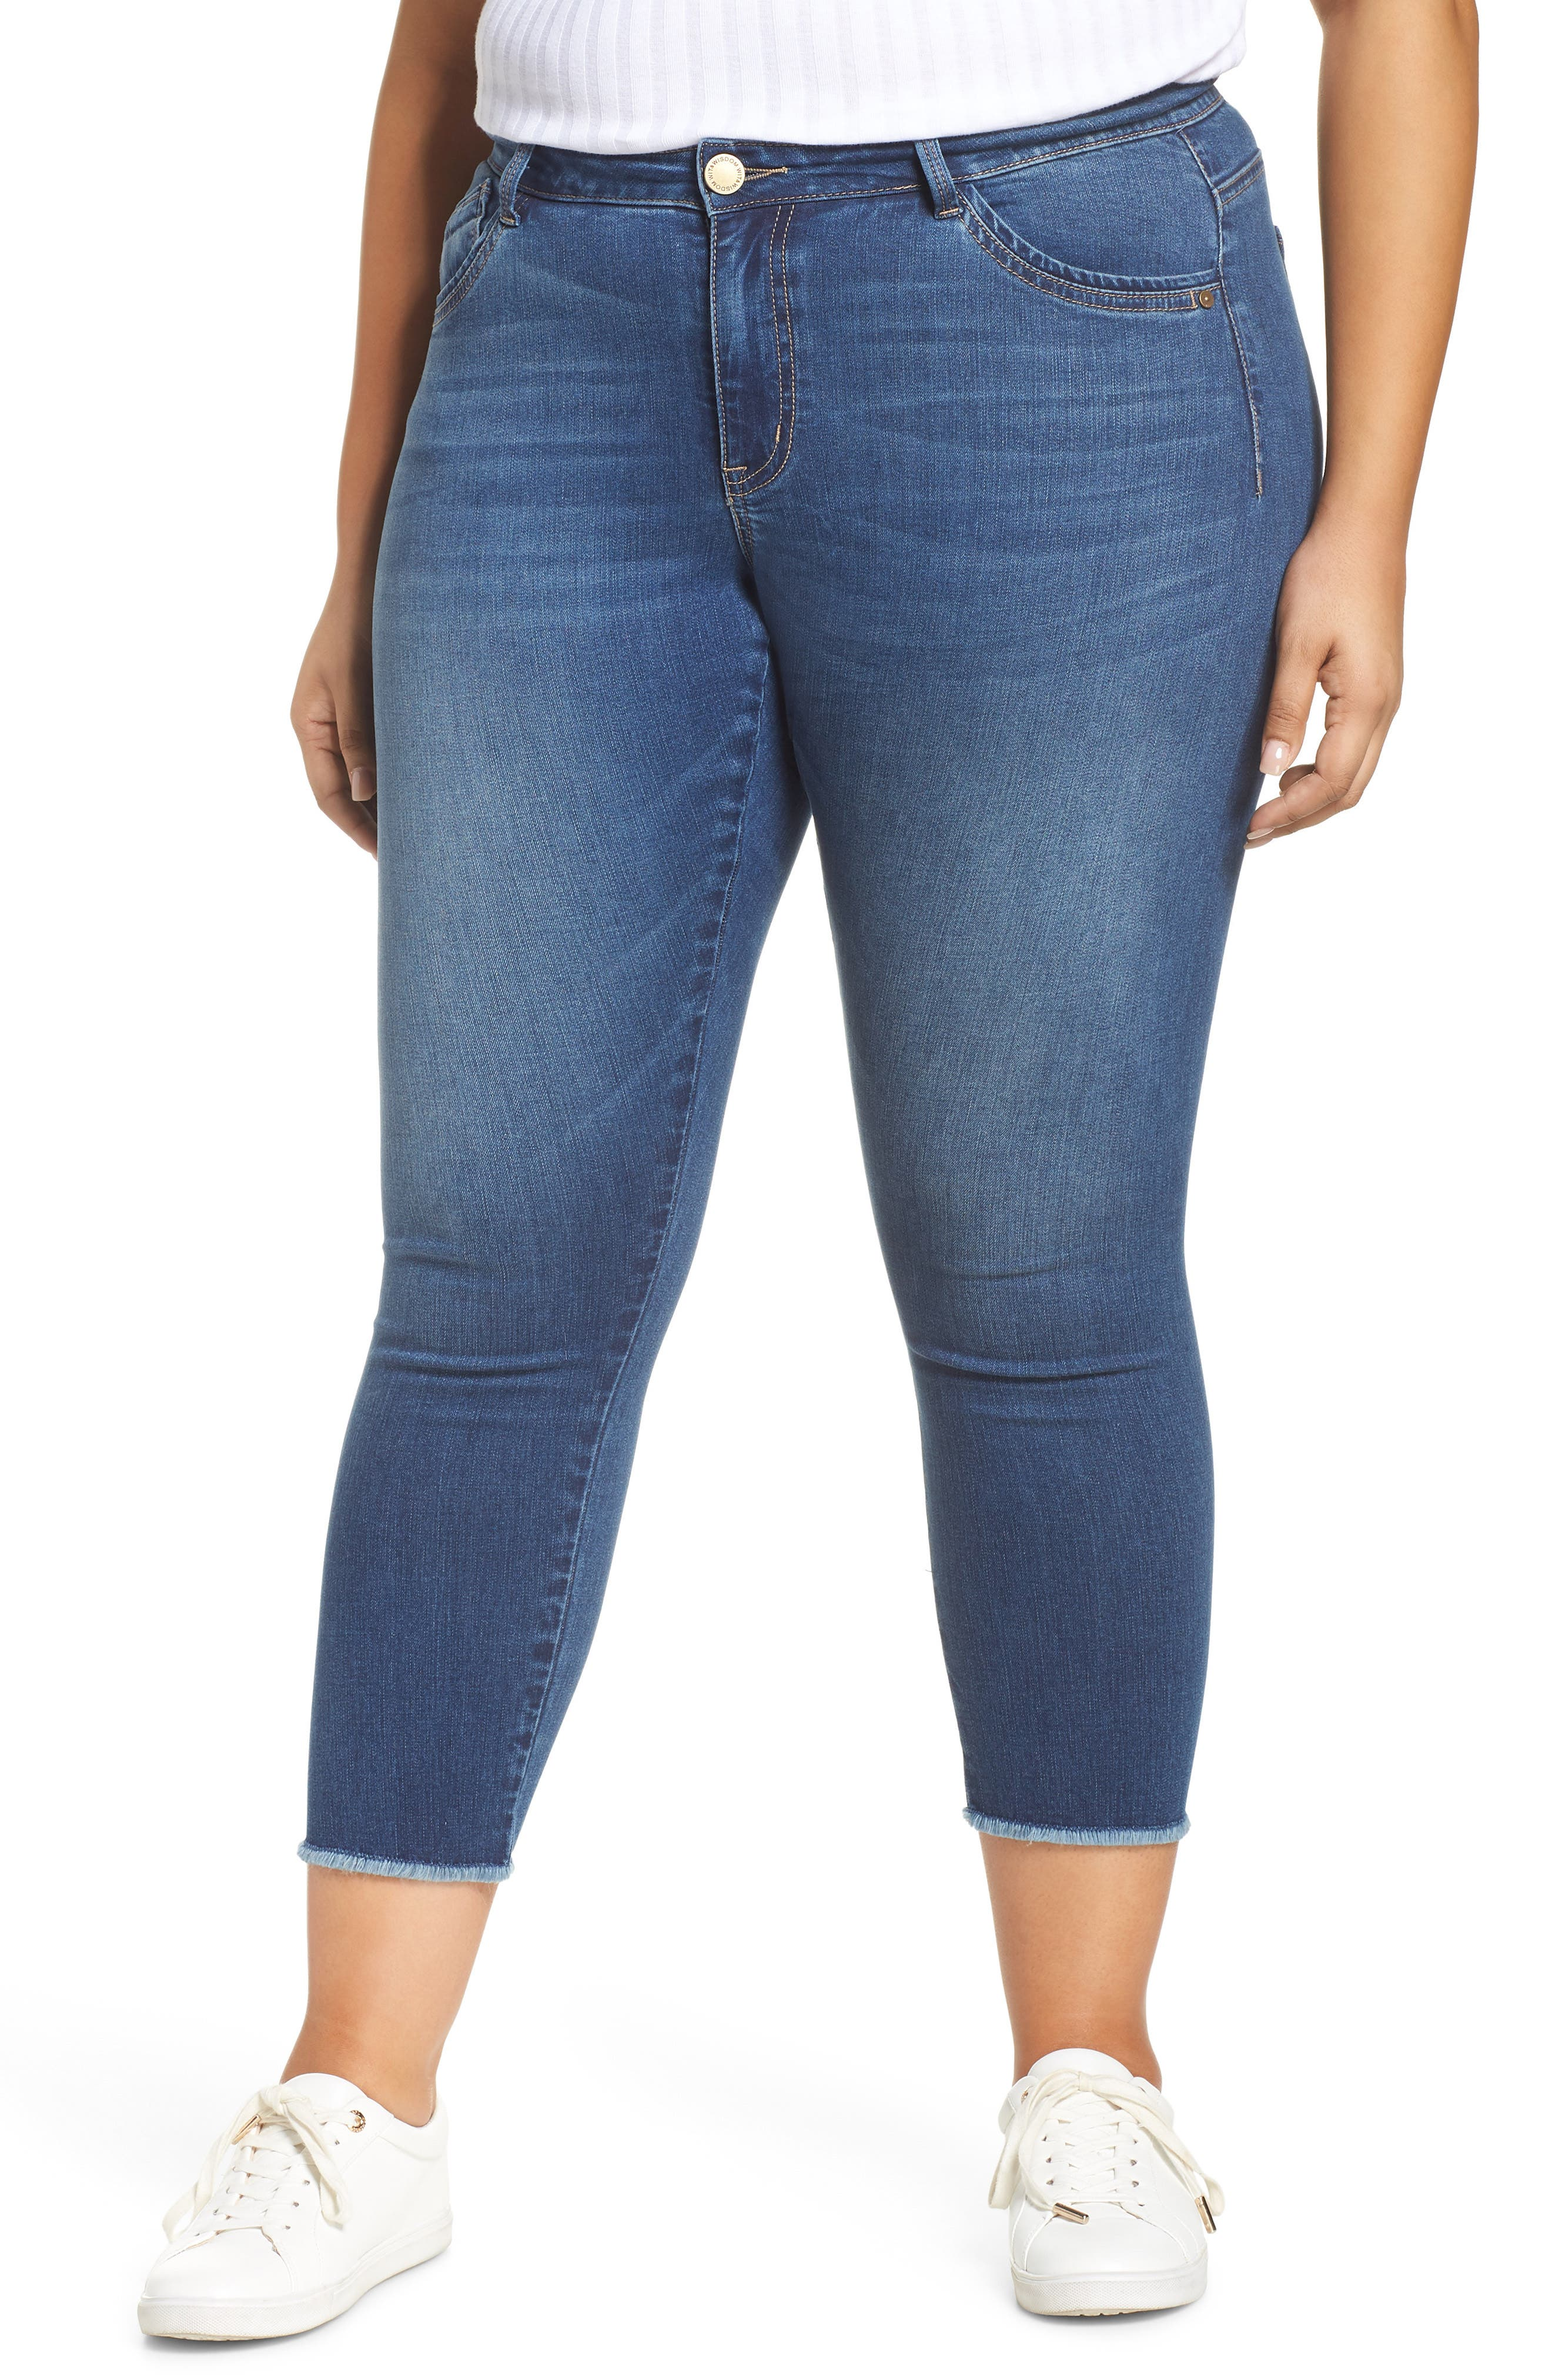 Seamless sides smooth the look of these extra-soft jeans styled in perfectly faded hue and fringed at the ankle for fun. Style Name: Wit & Wisdom Seamless Raw Edge Skinny Ankle Jeans (Nordstrom Exclusive). Style Number: 5785710. Available in stores.